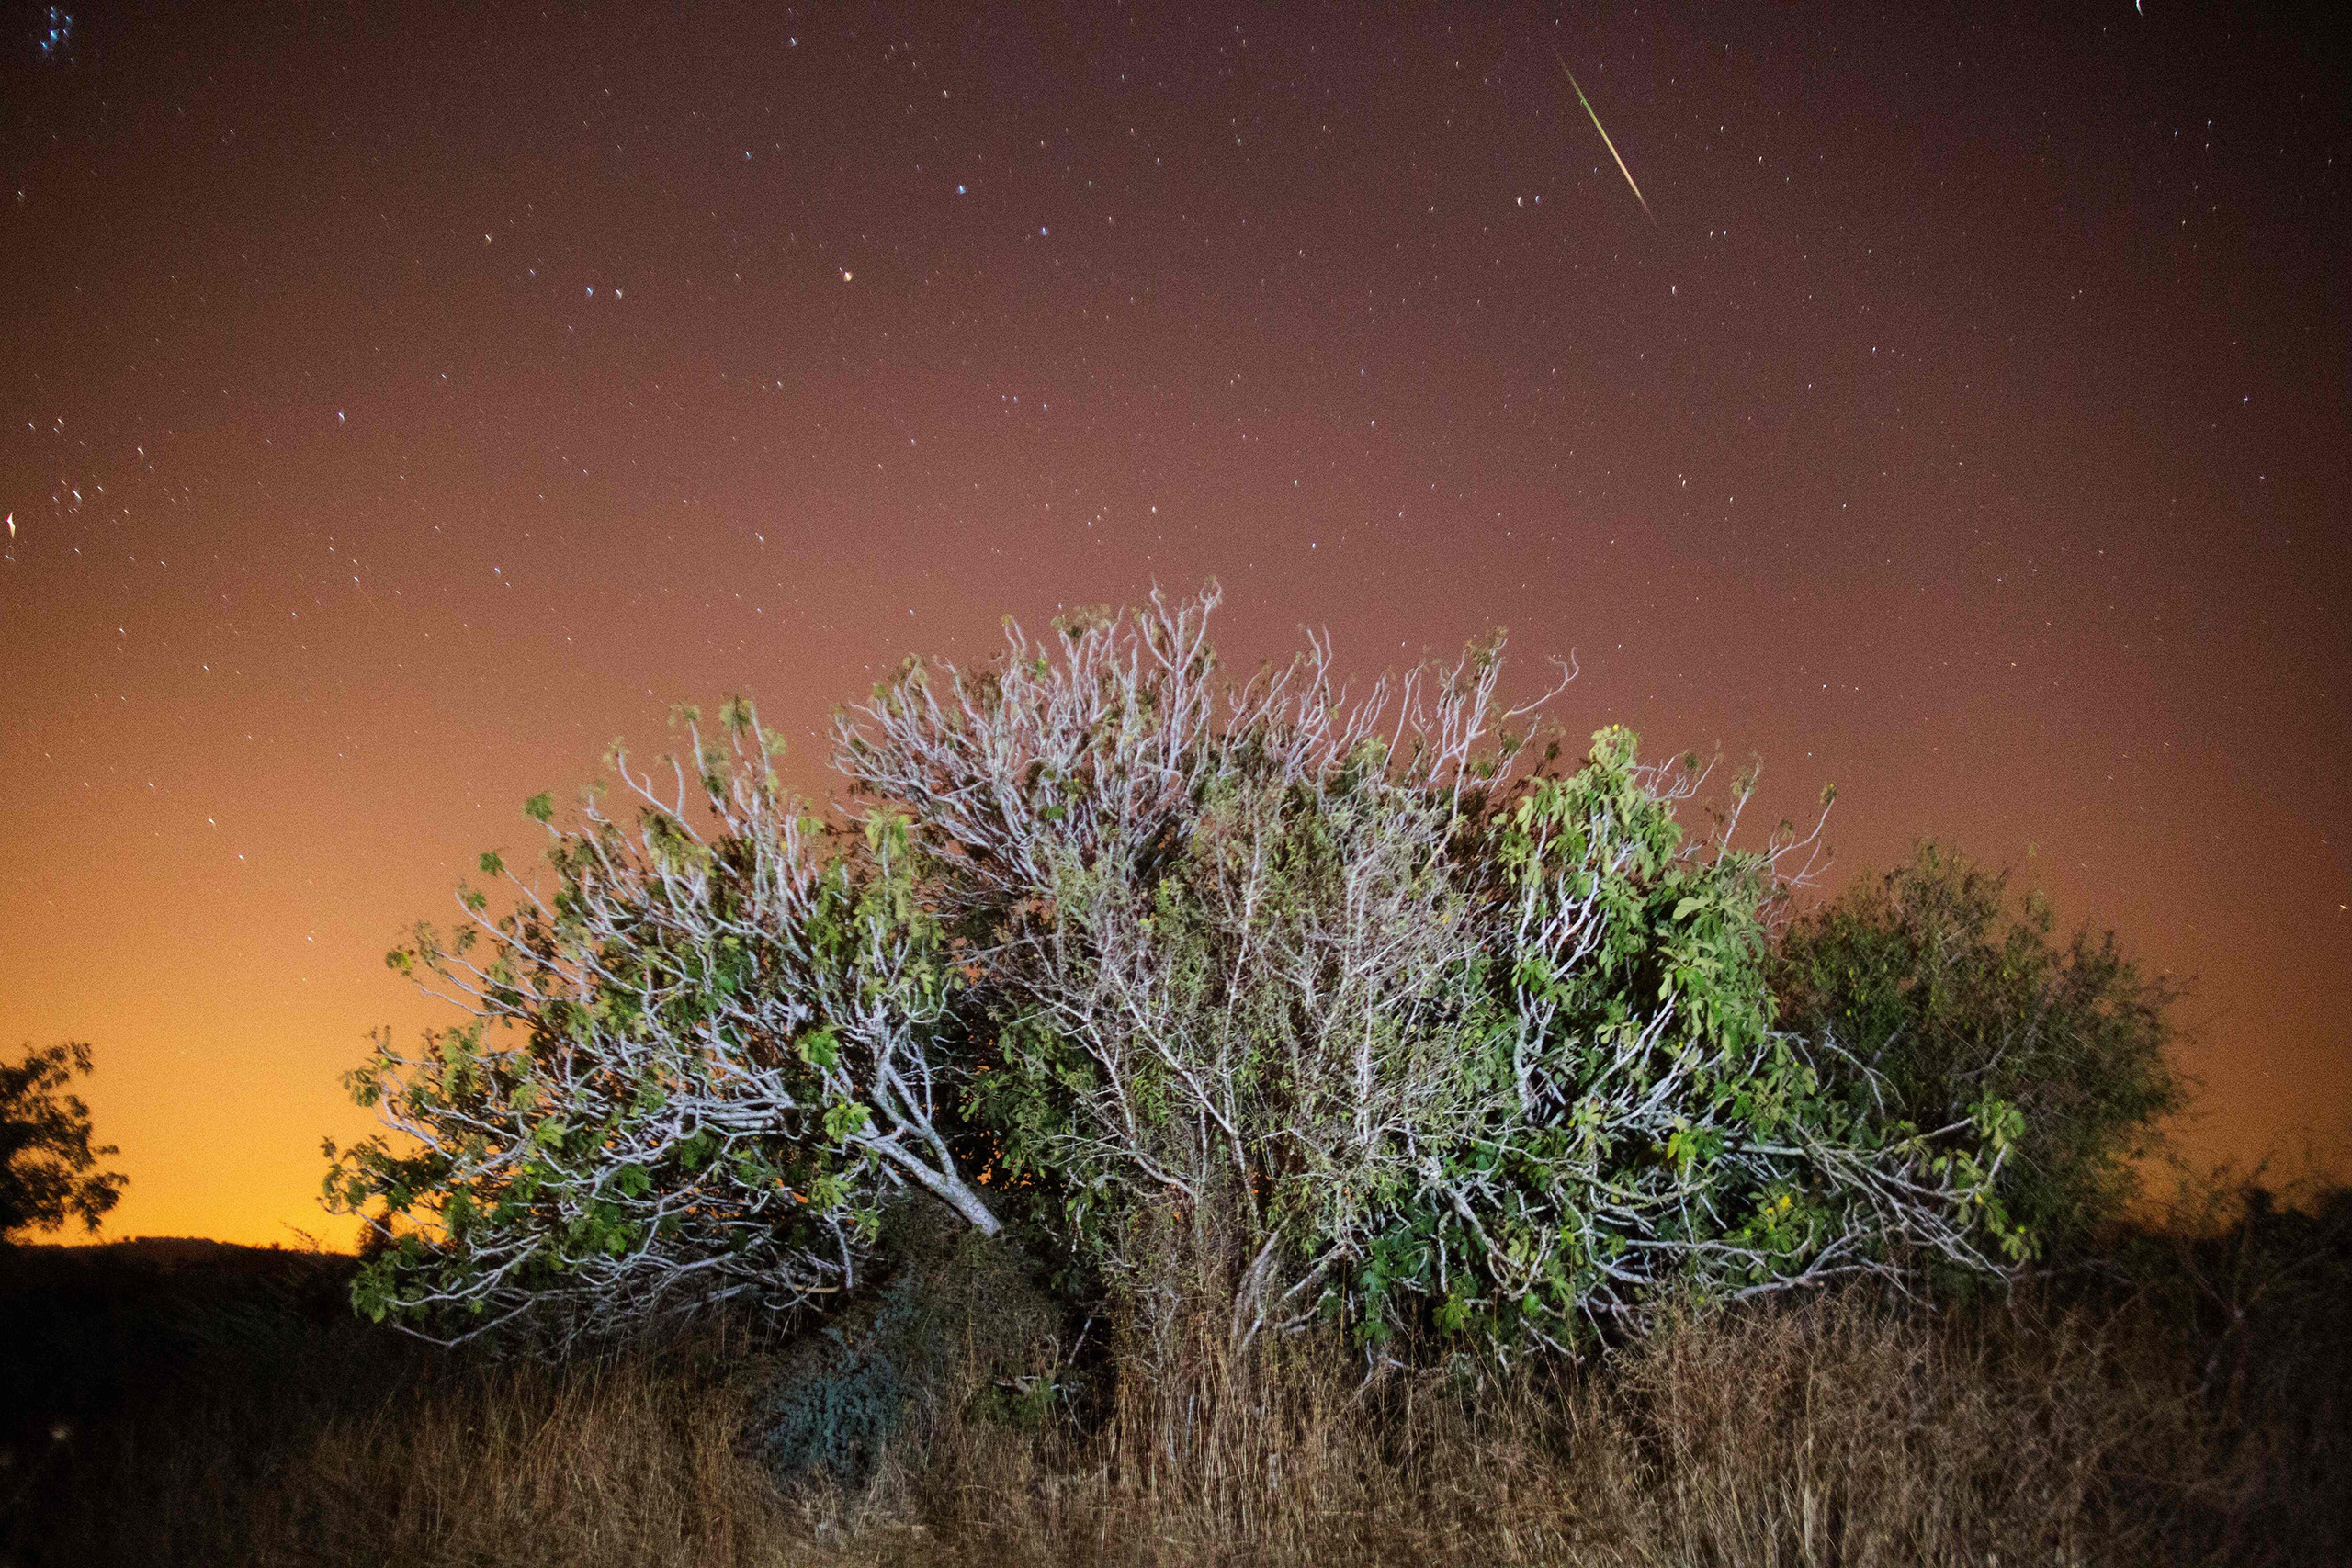 A Perseid meteor streaks across the sky above trees in the central Israeli village of Luzit on Aug. 12, 2016.